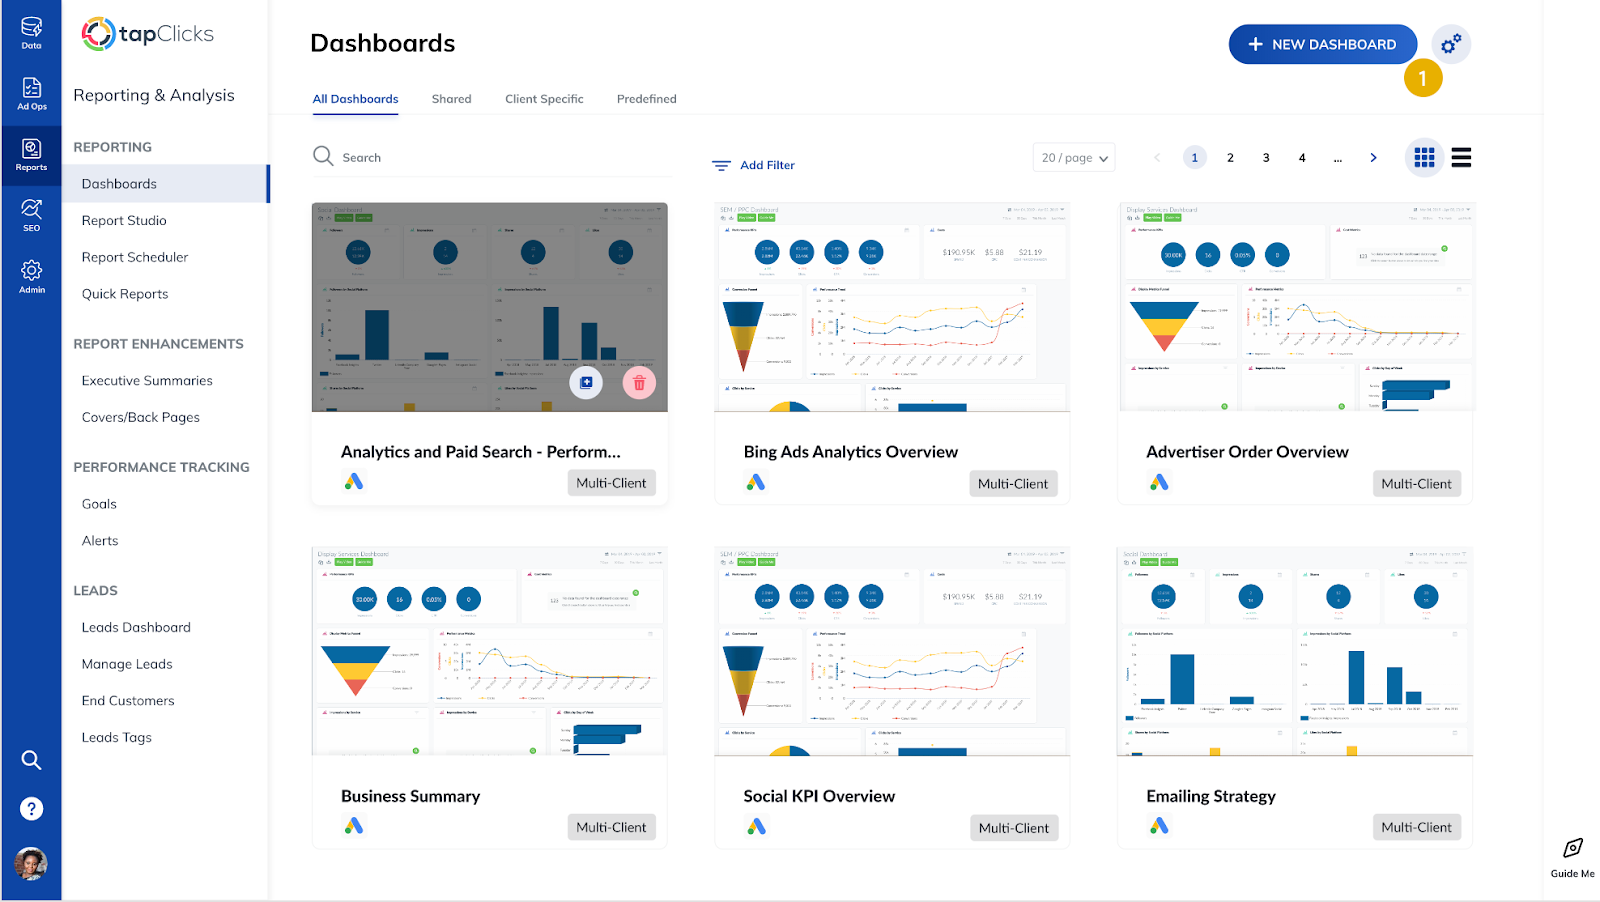 Advertising Dashboards by TapClicks